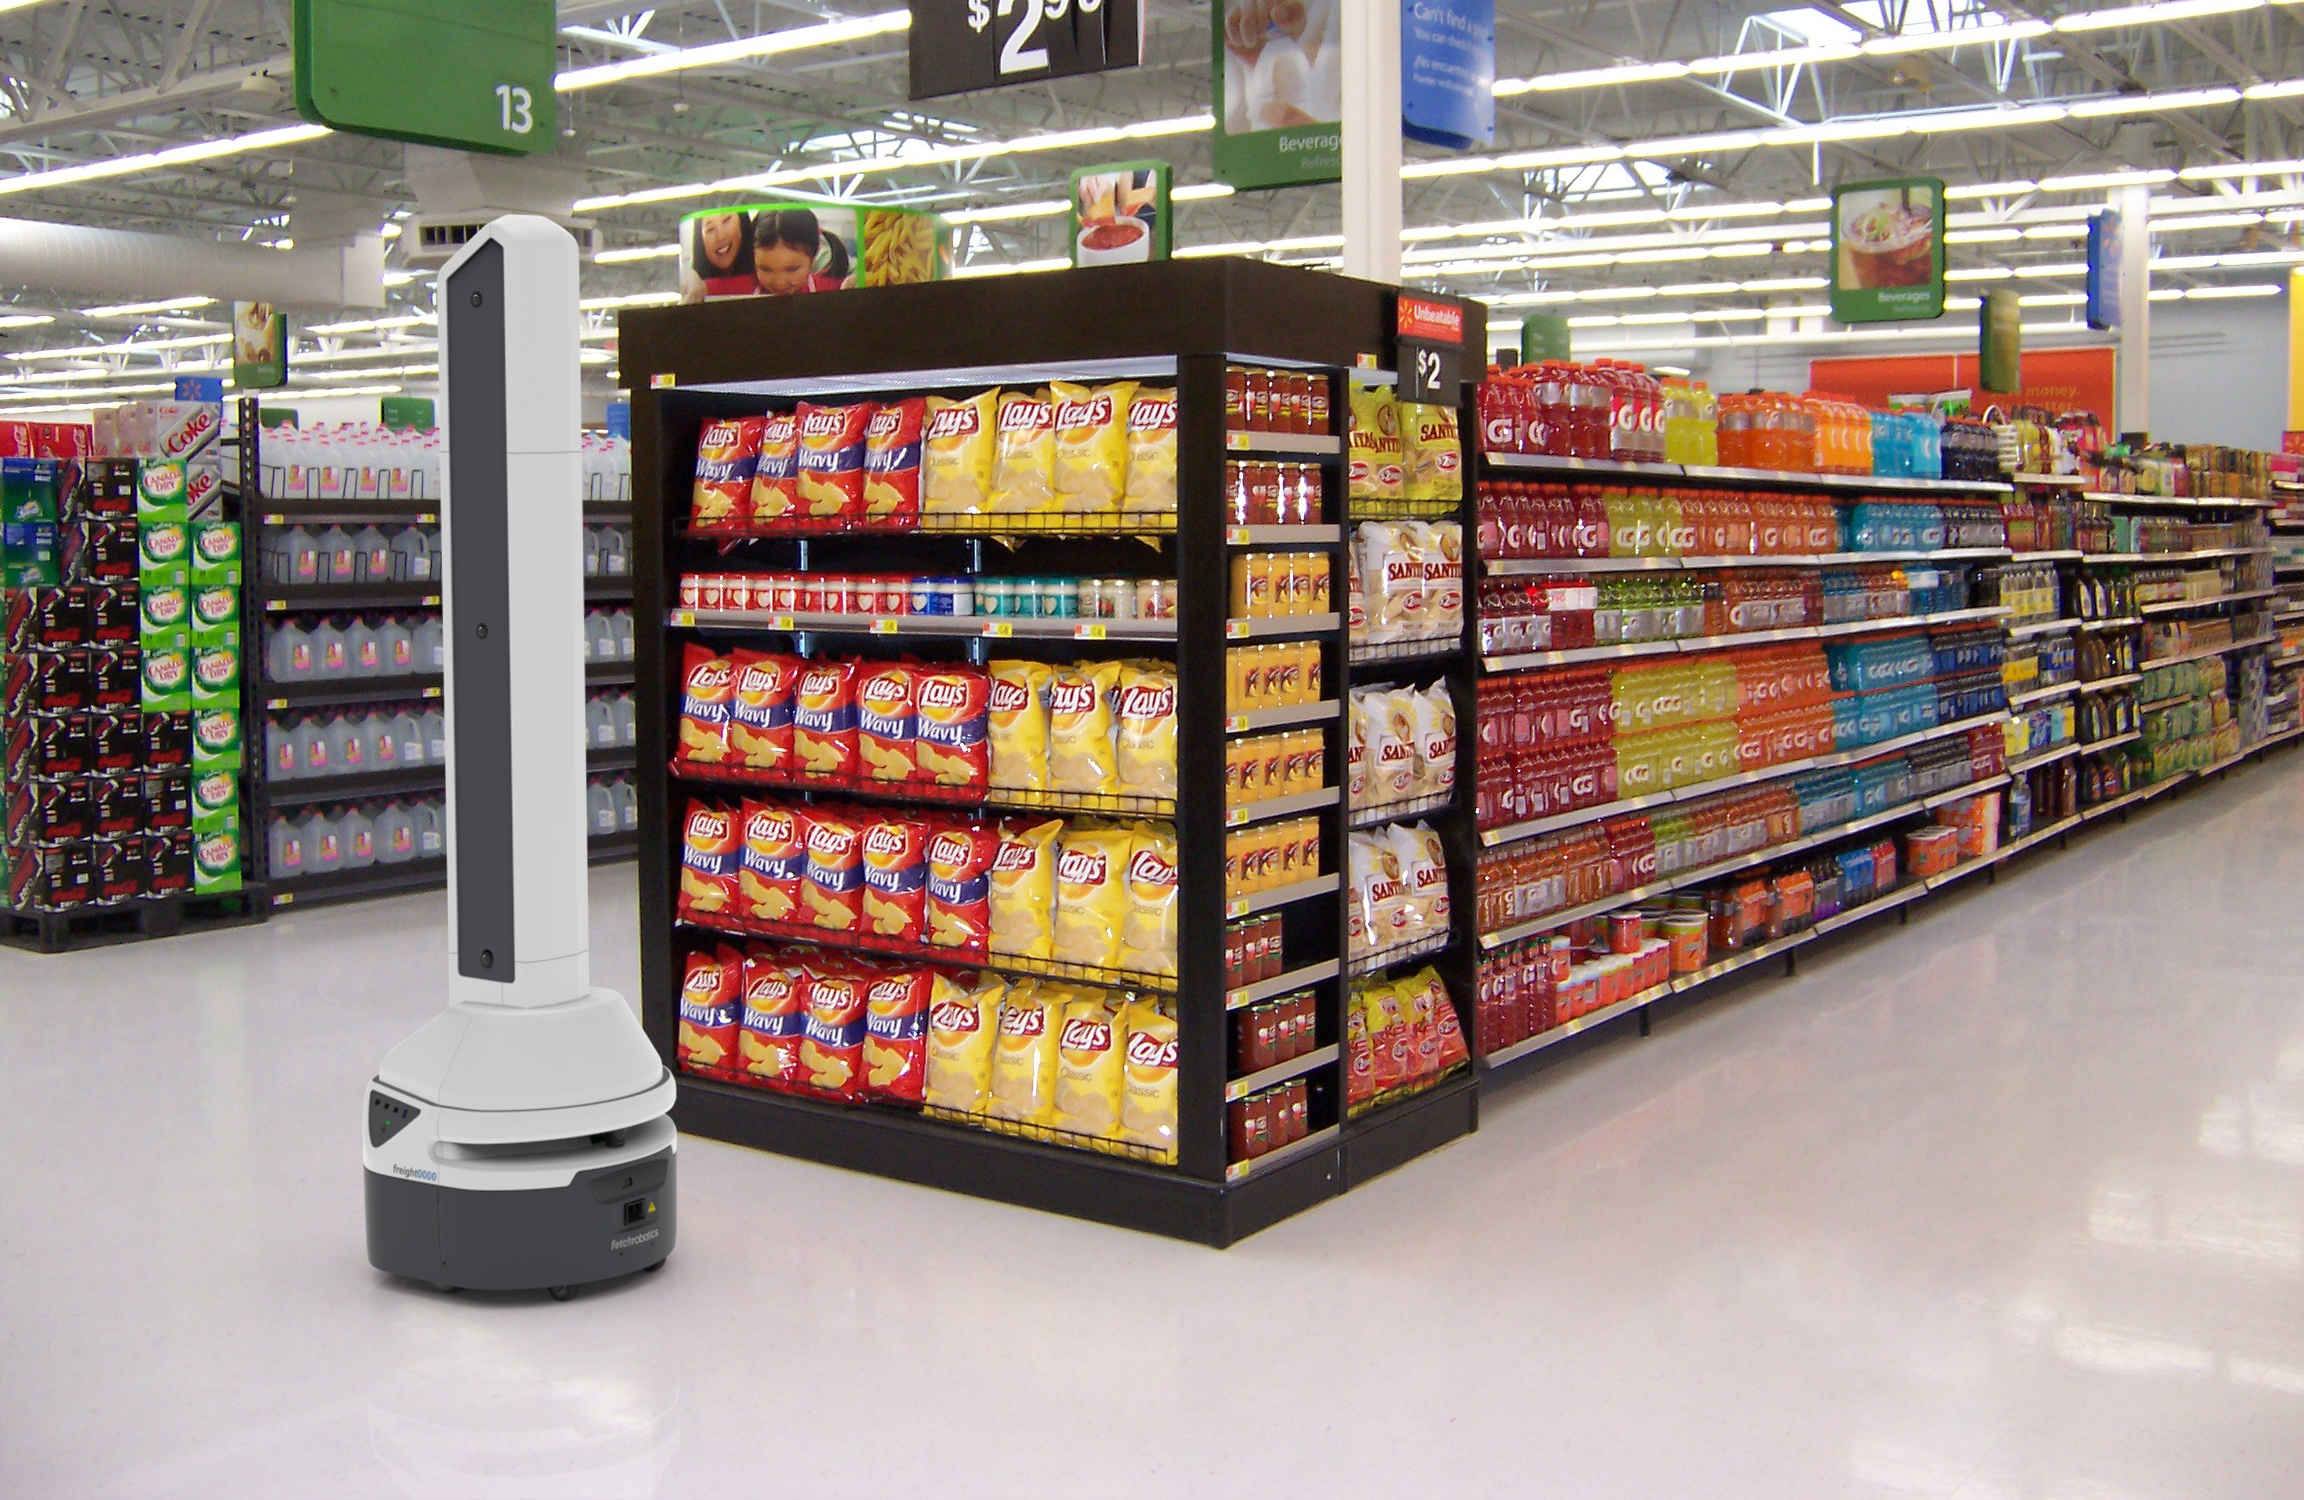 Image recognition robot in-store